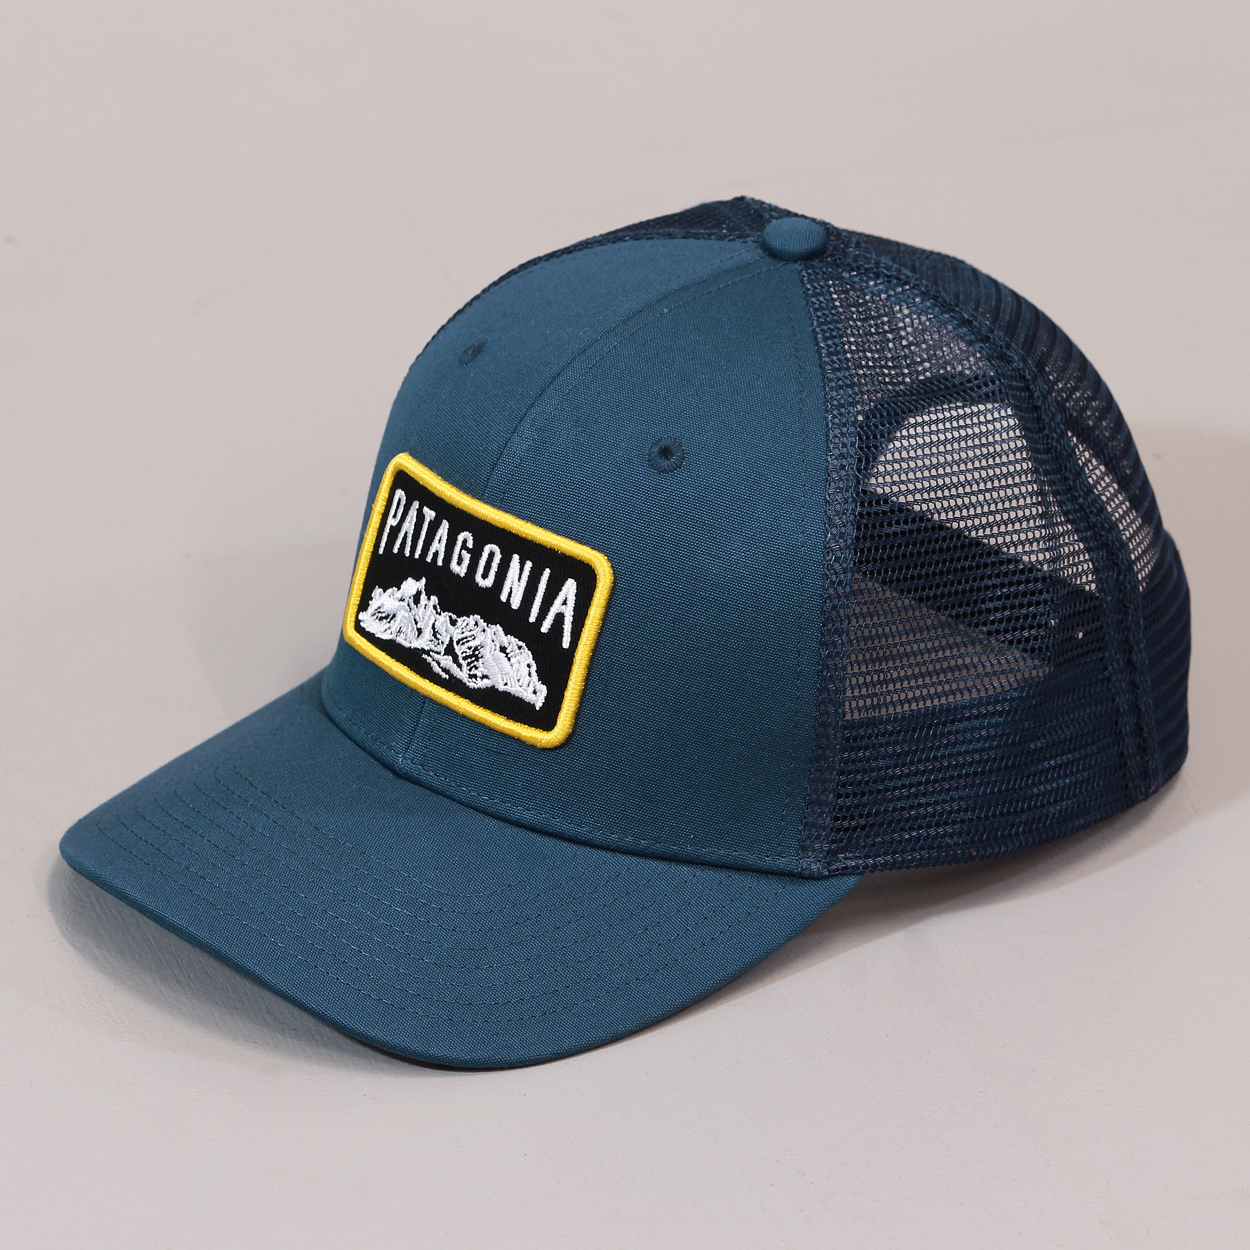 154af5fe154 Patagonia Climb A Mountain Outdoor Mesh Trucker Hat Glass Blue £16.50